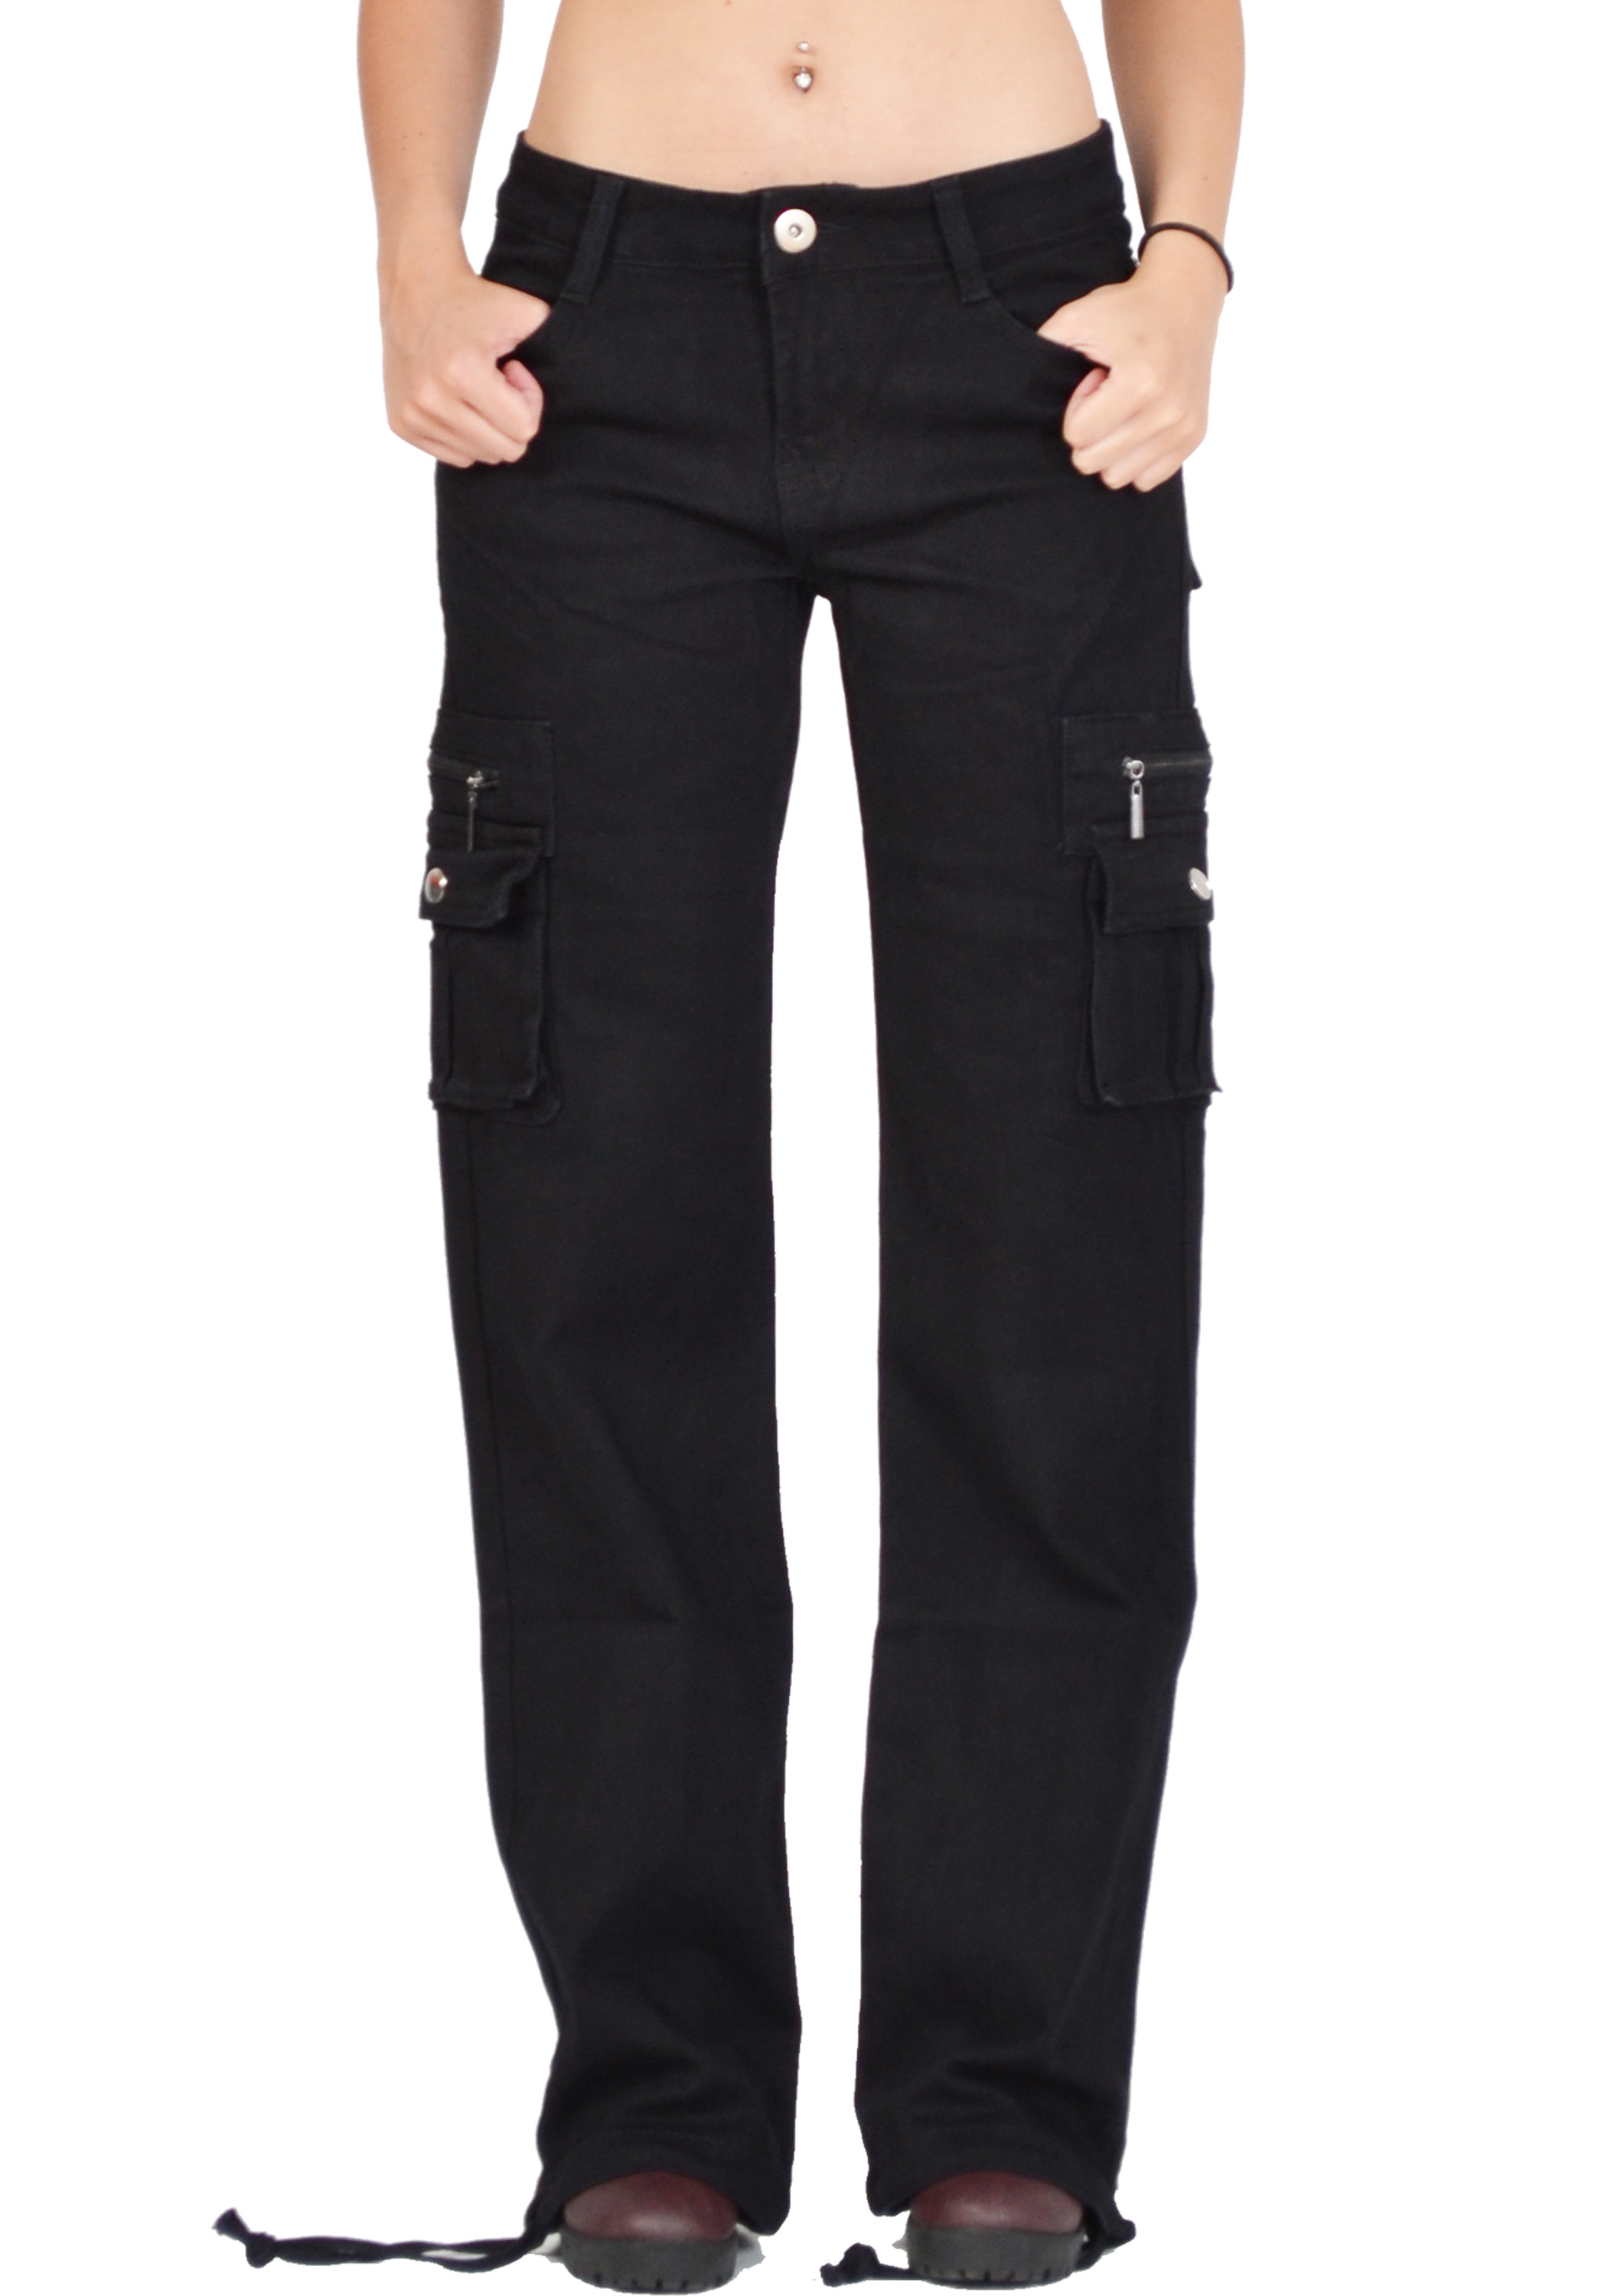 Amazon.com: black cargo pants for women: Clothing, Shoes ...